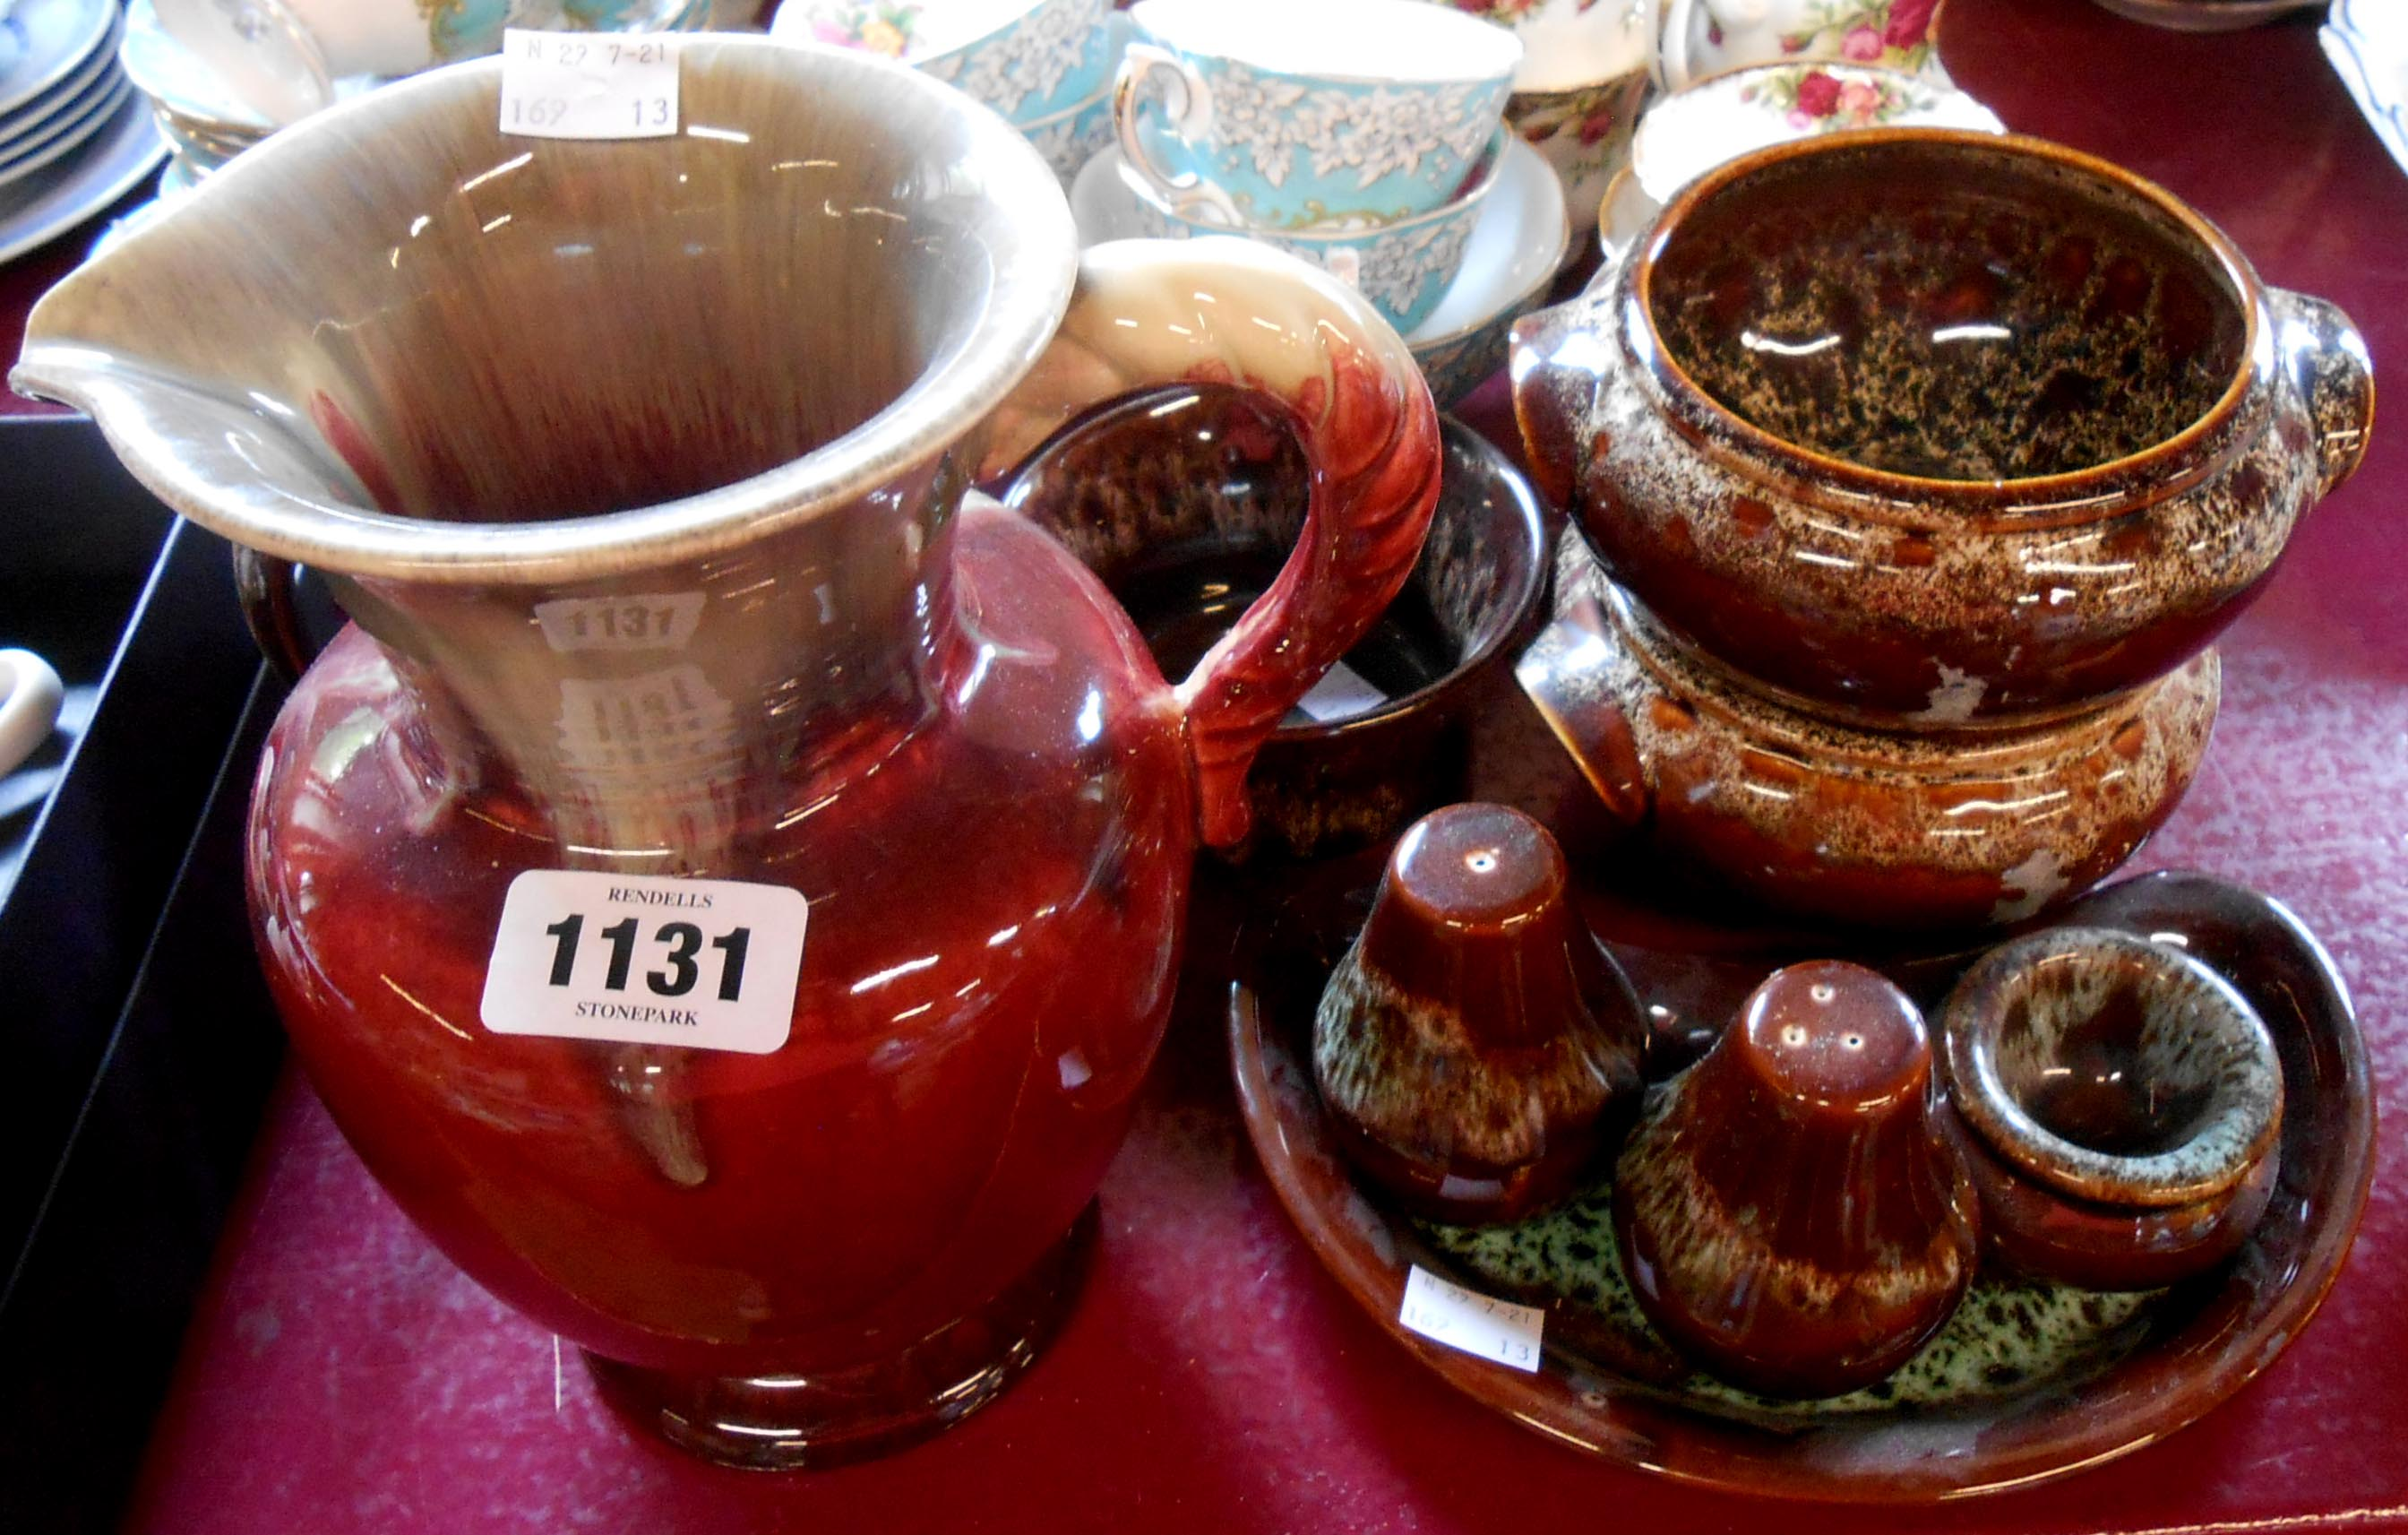 A small quantity of Fosters Cornish pottery including cruet, soup bowls and jug - sold with a West